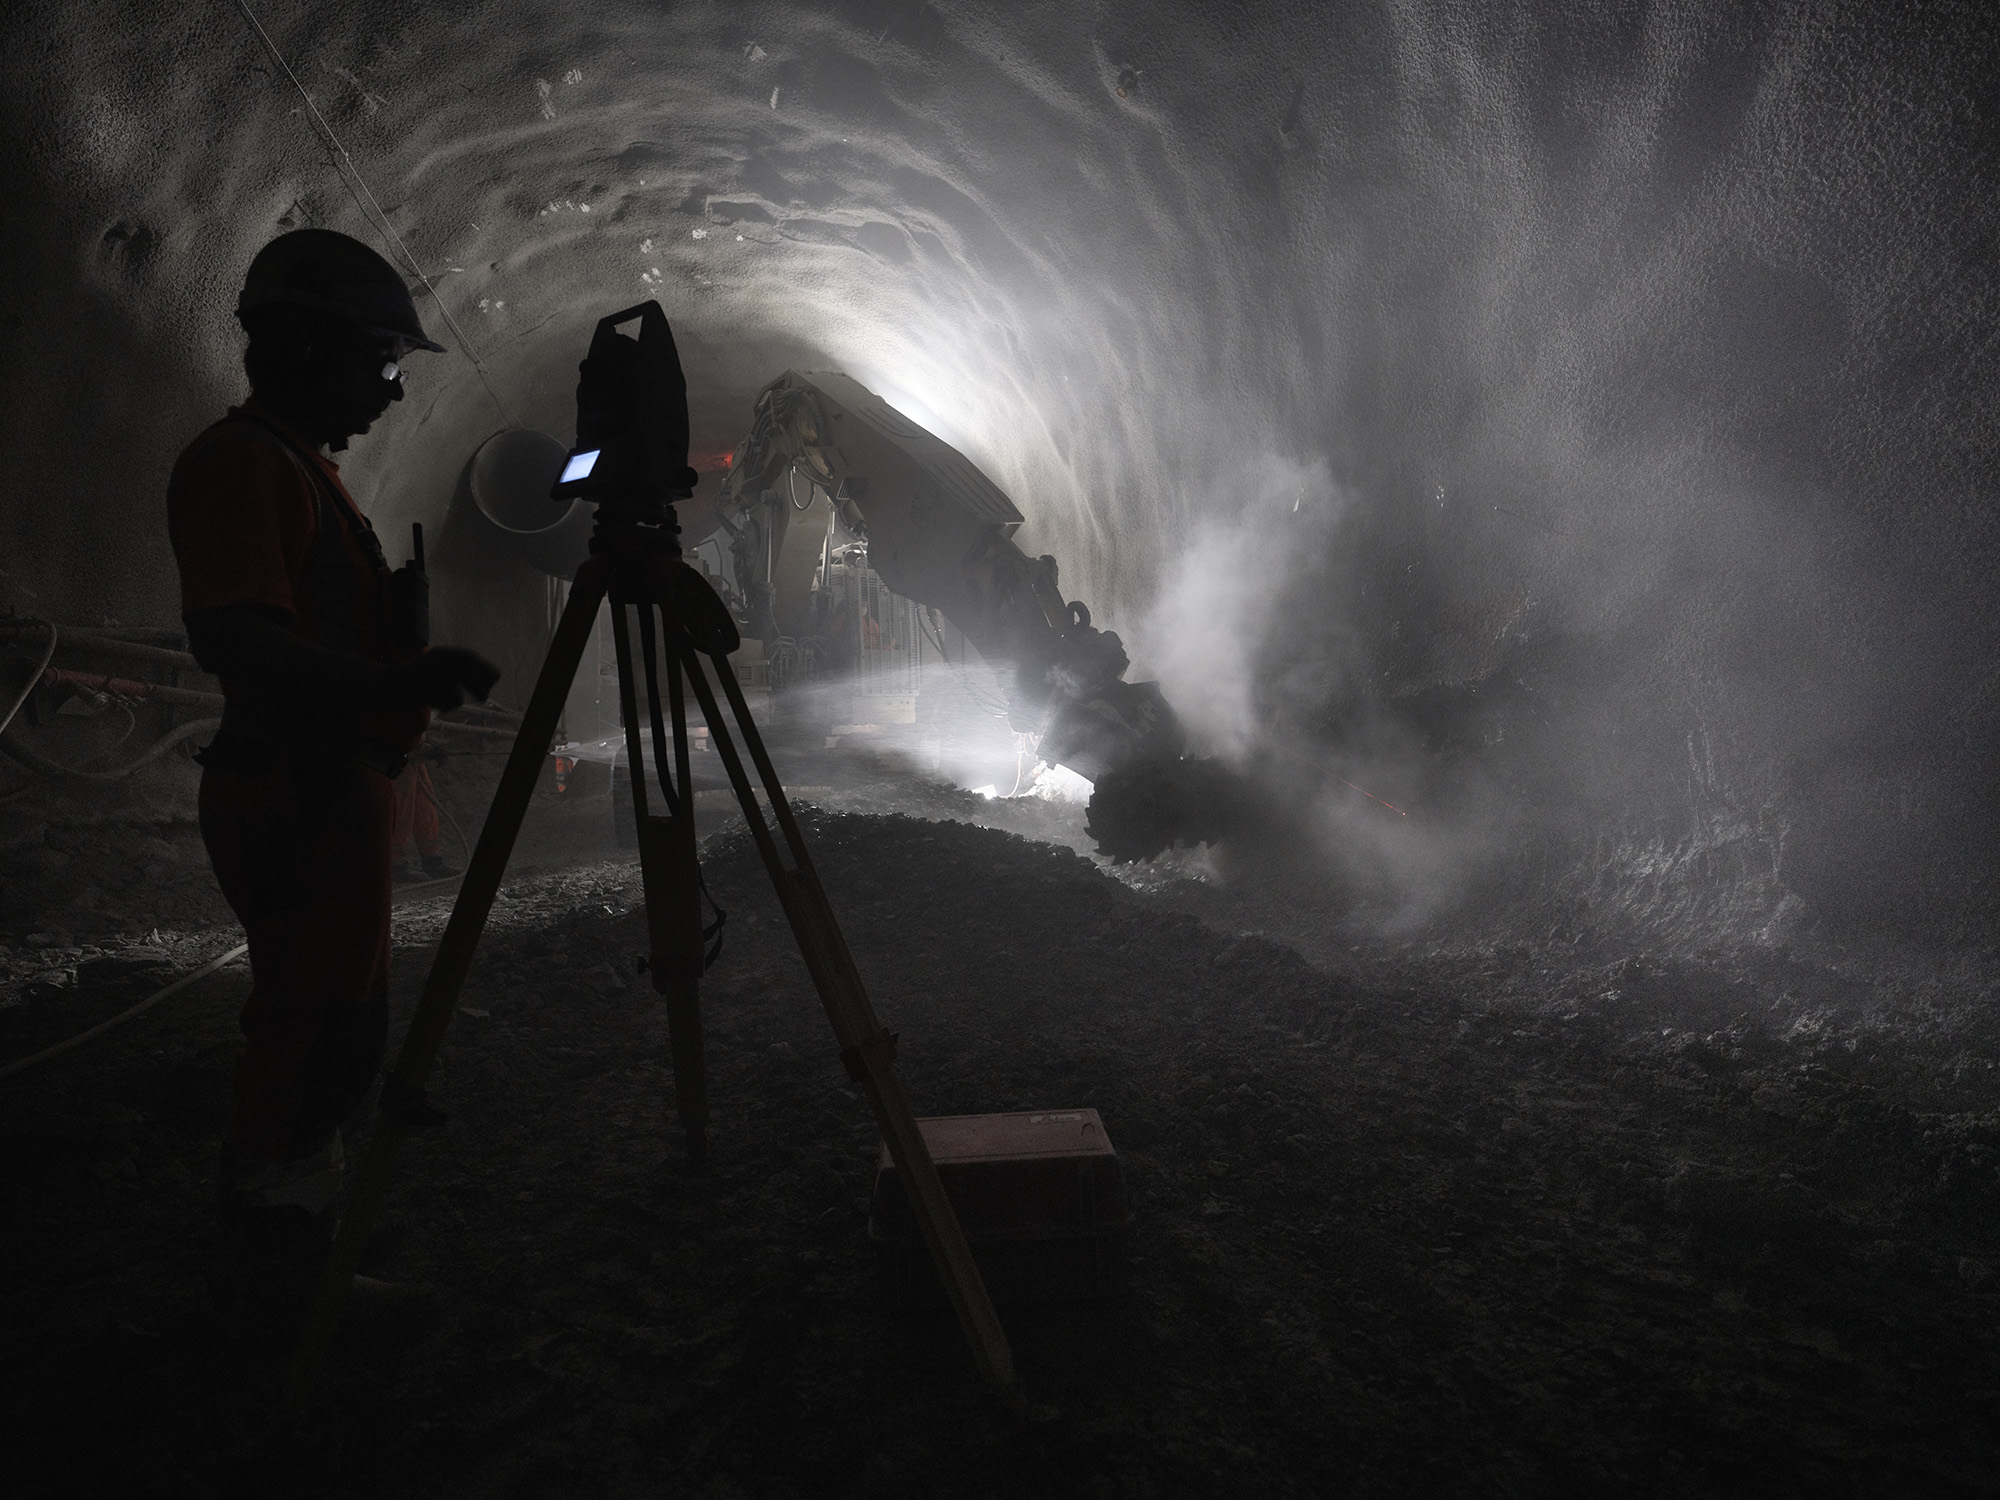 Silhouette of person in construction helmet in dimly lit tunnel